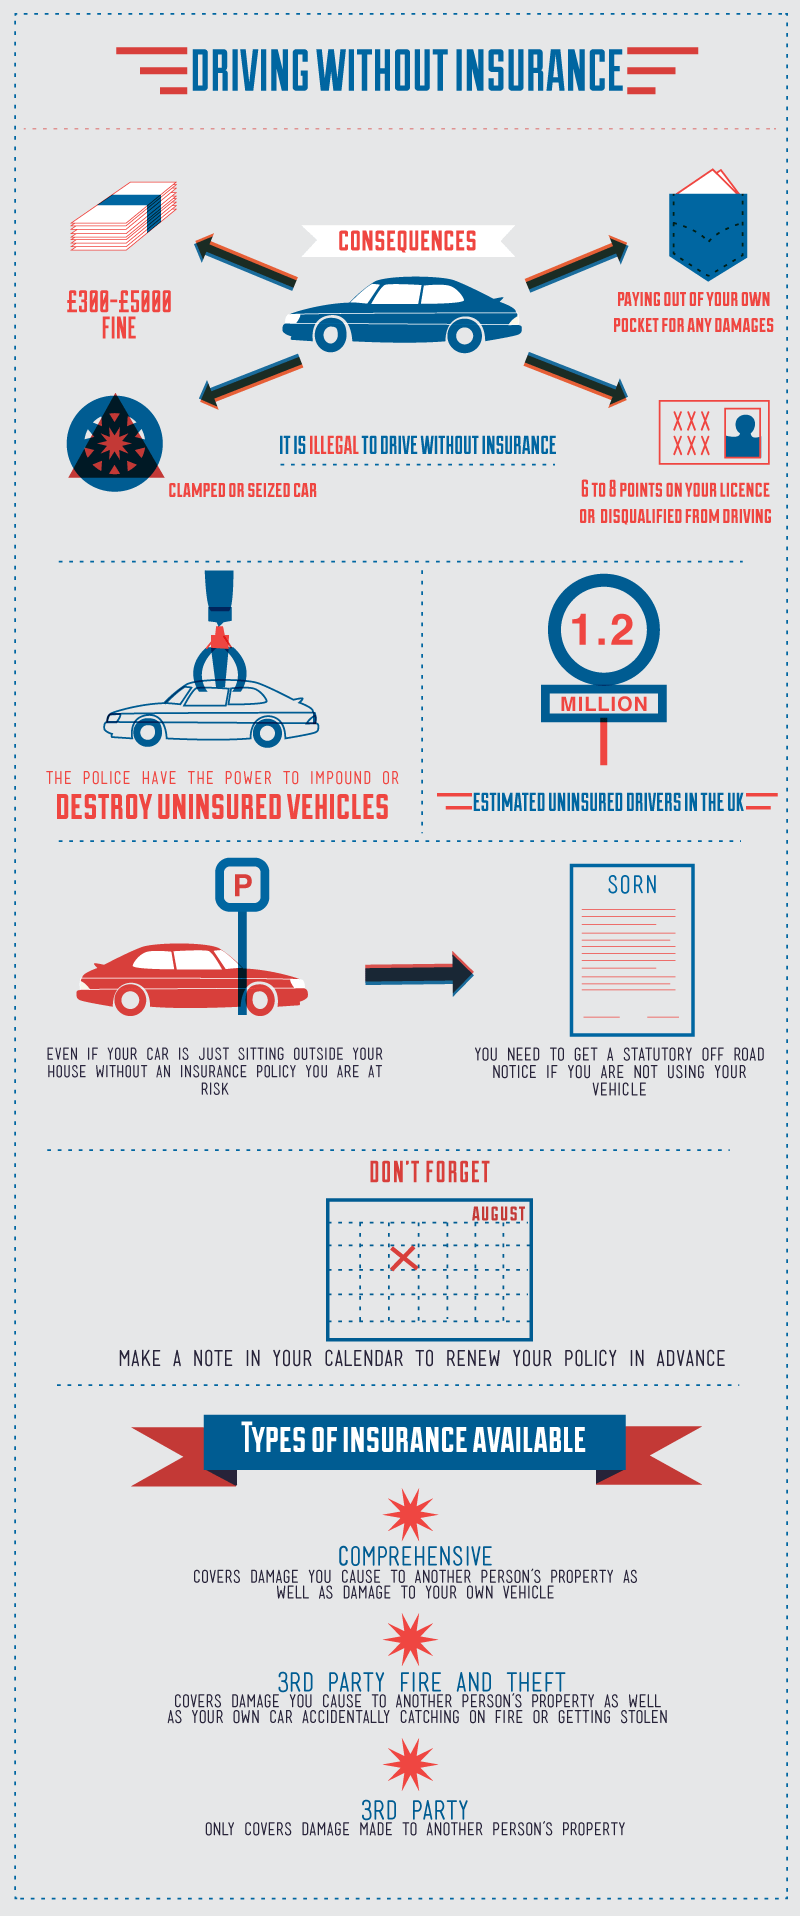 Driving without insurance: the facts